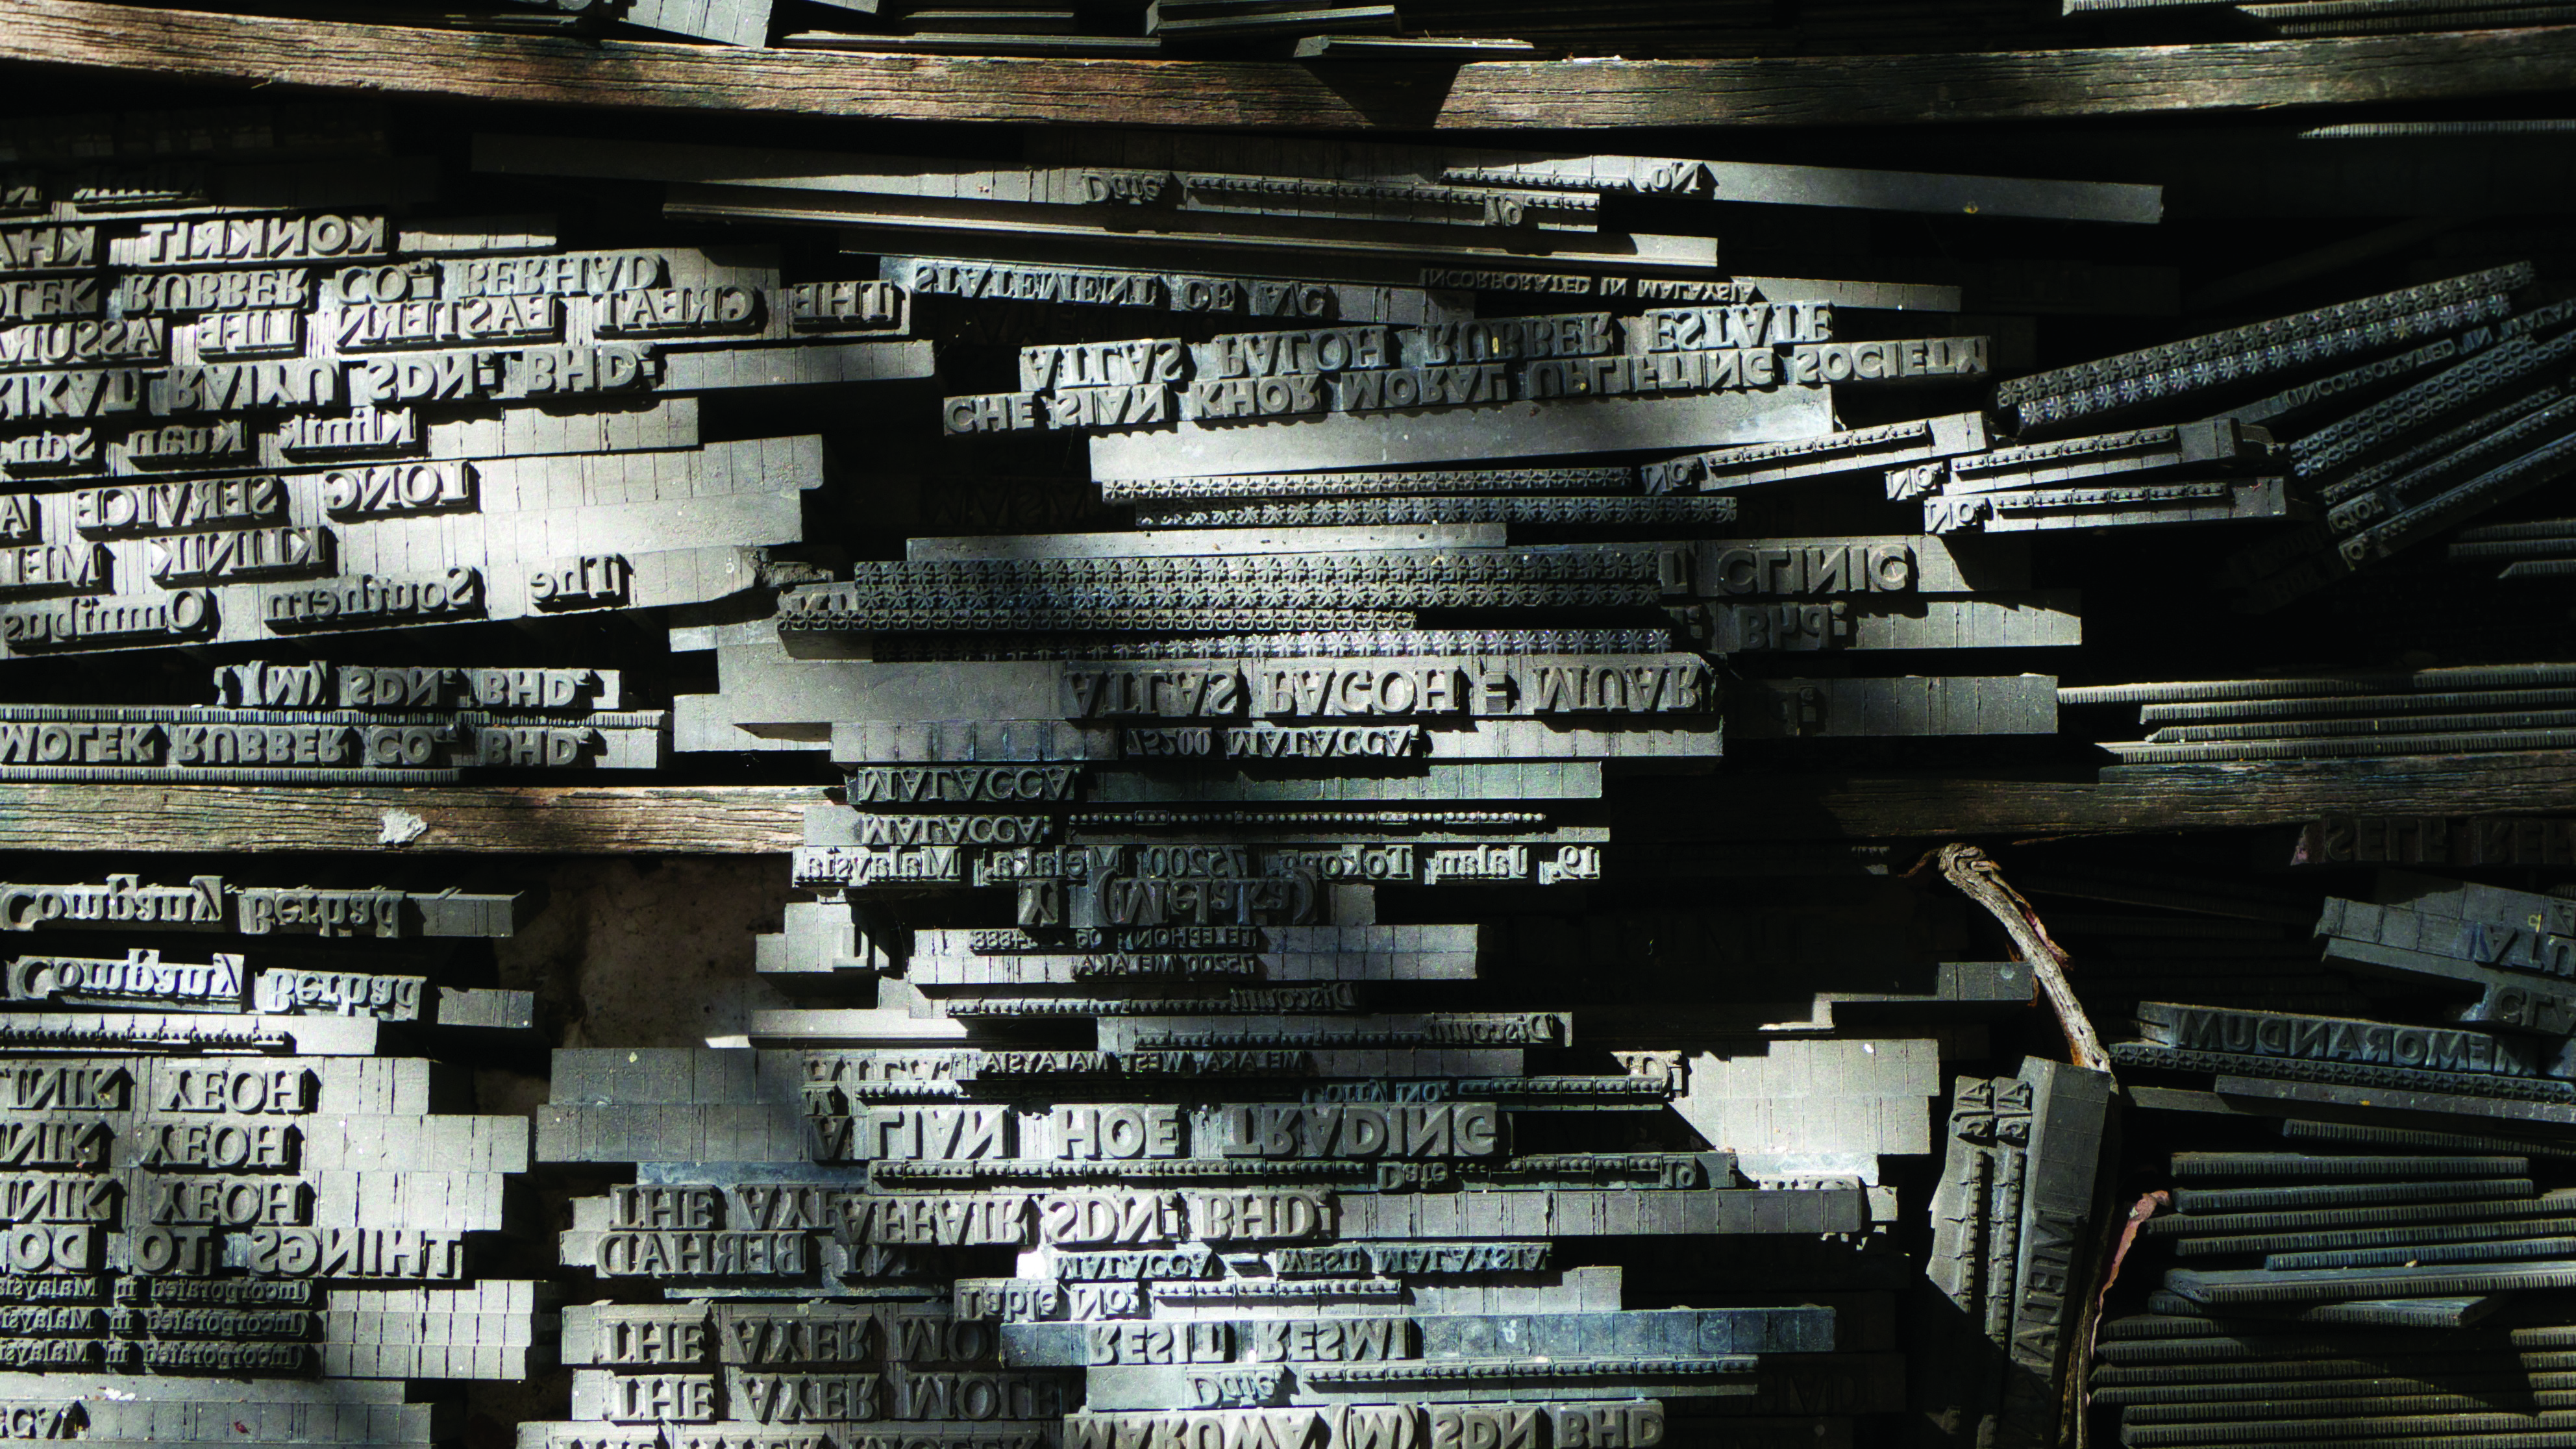 Lines of lead type produced by a Linotype machine.